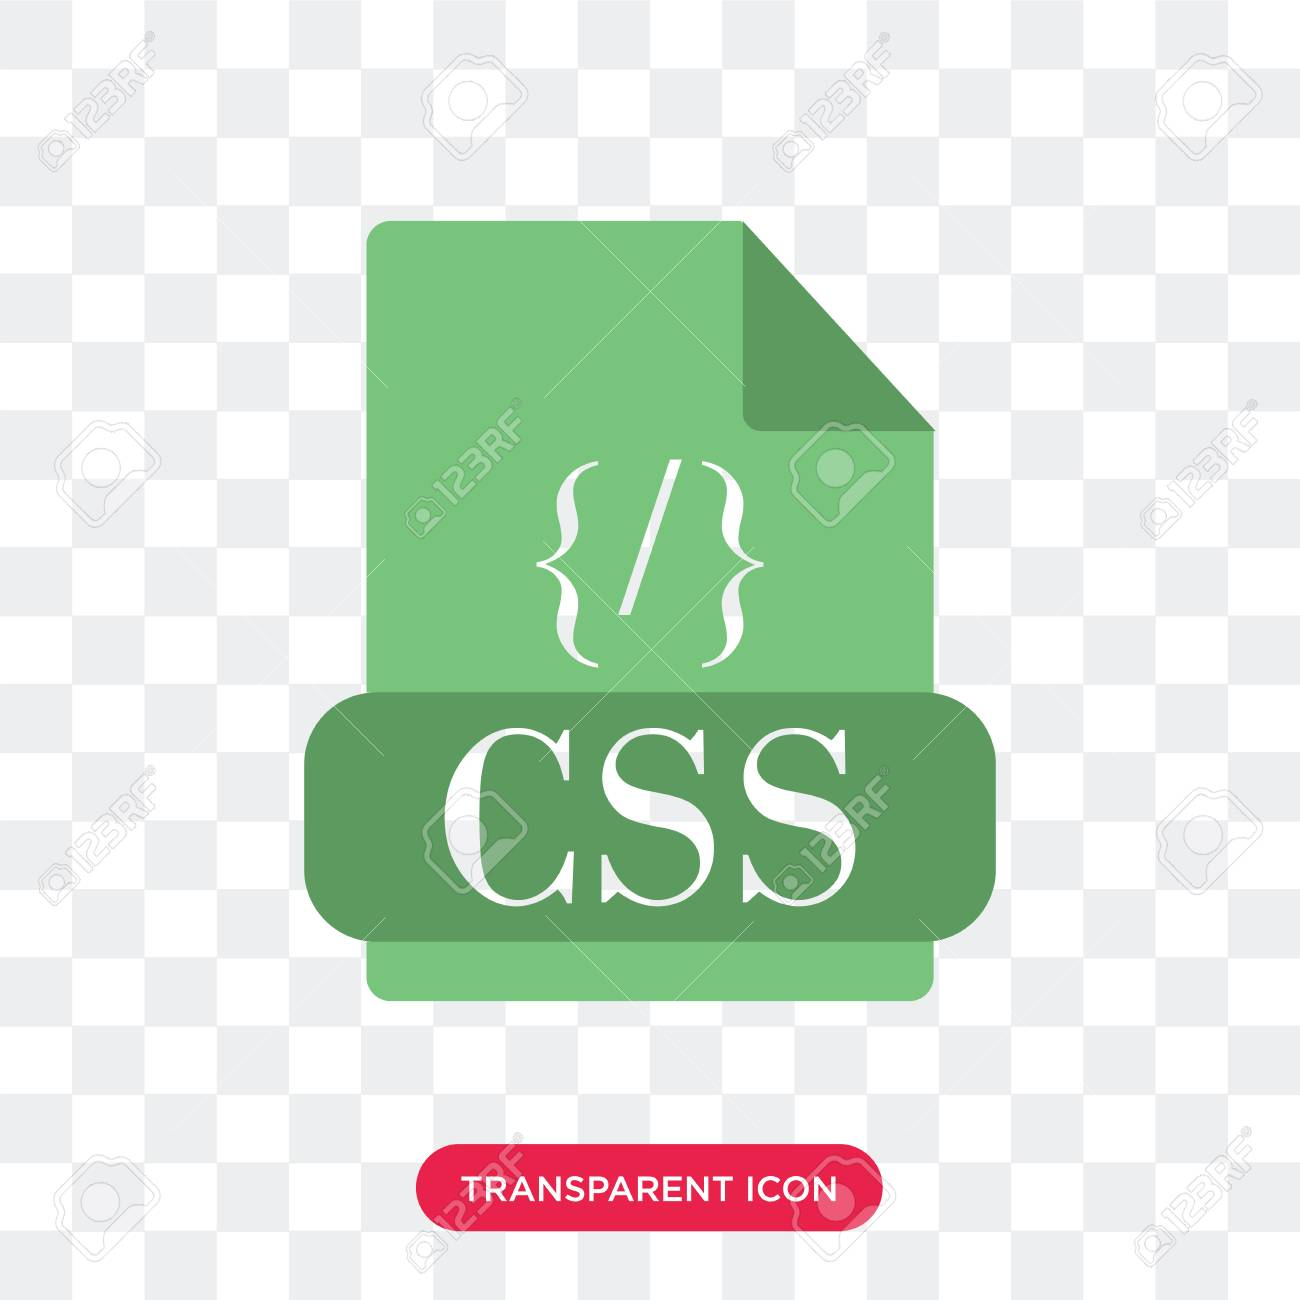 Css Vector Icon Isolated On Transparent Background Css Logo Royalty Free Cliparts Vectors And Stock Illustration Image 107020177